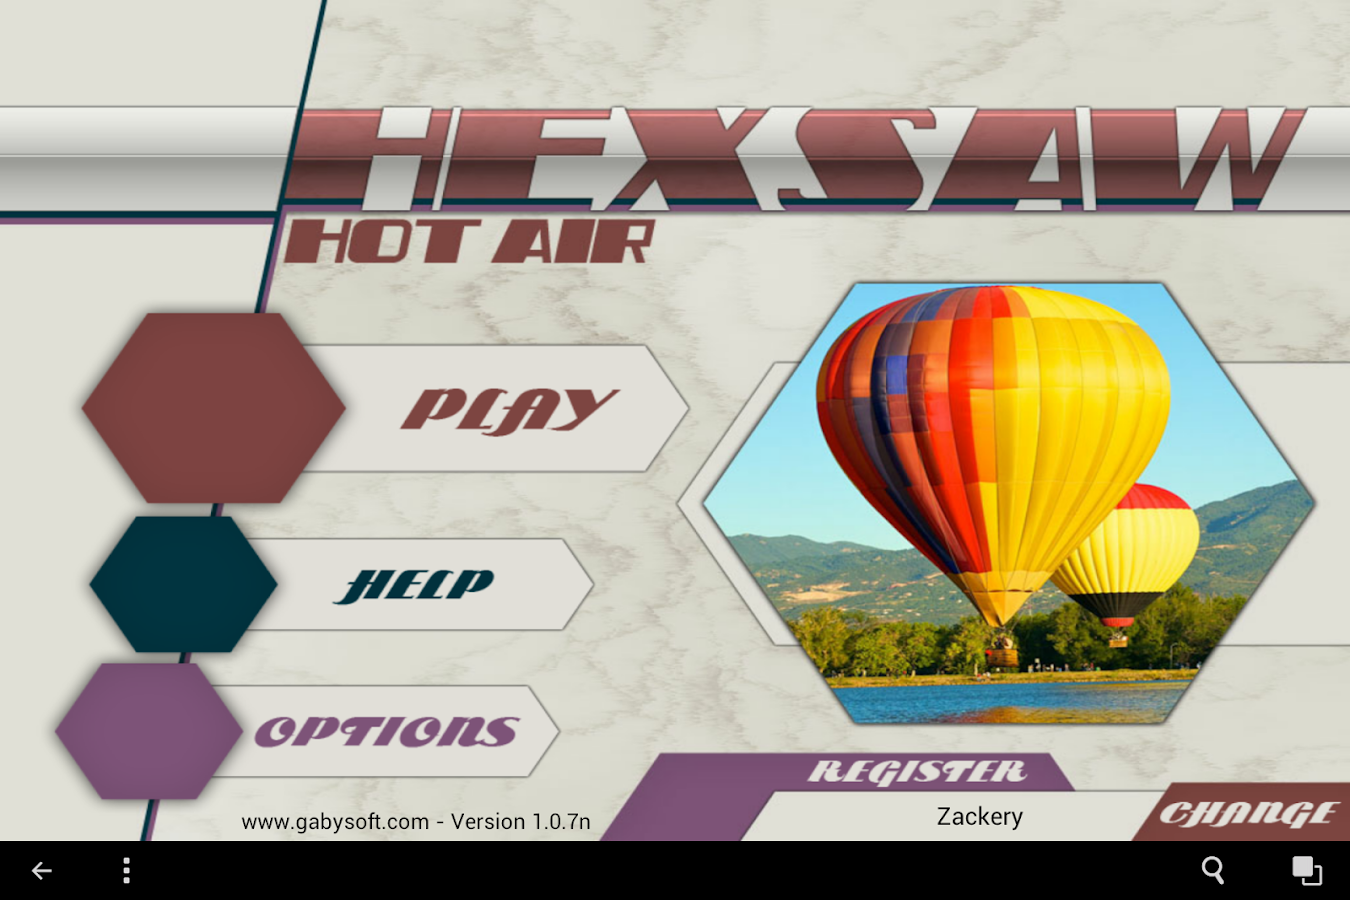 HexSaw - Hot Air- screenshot